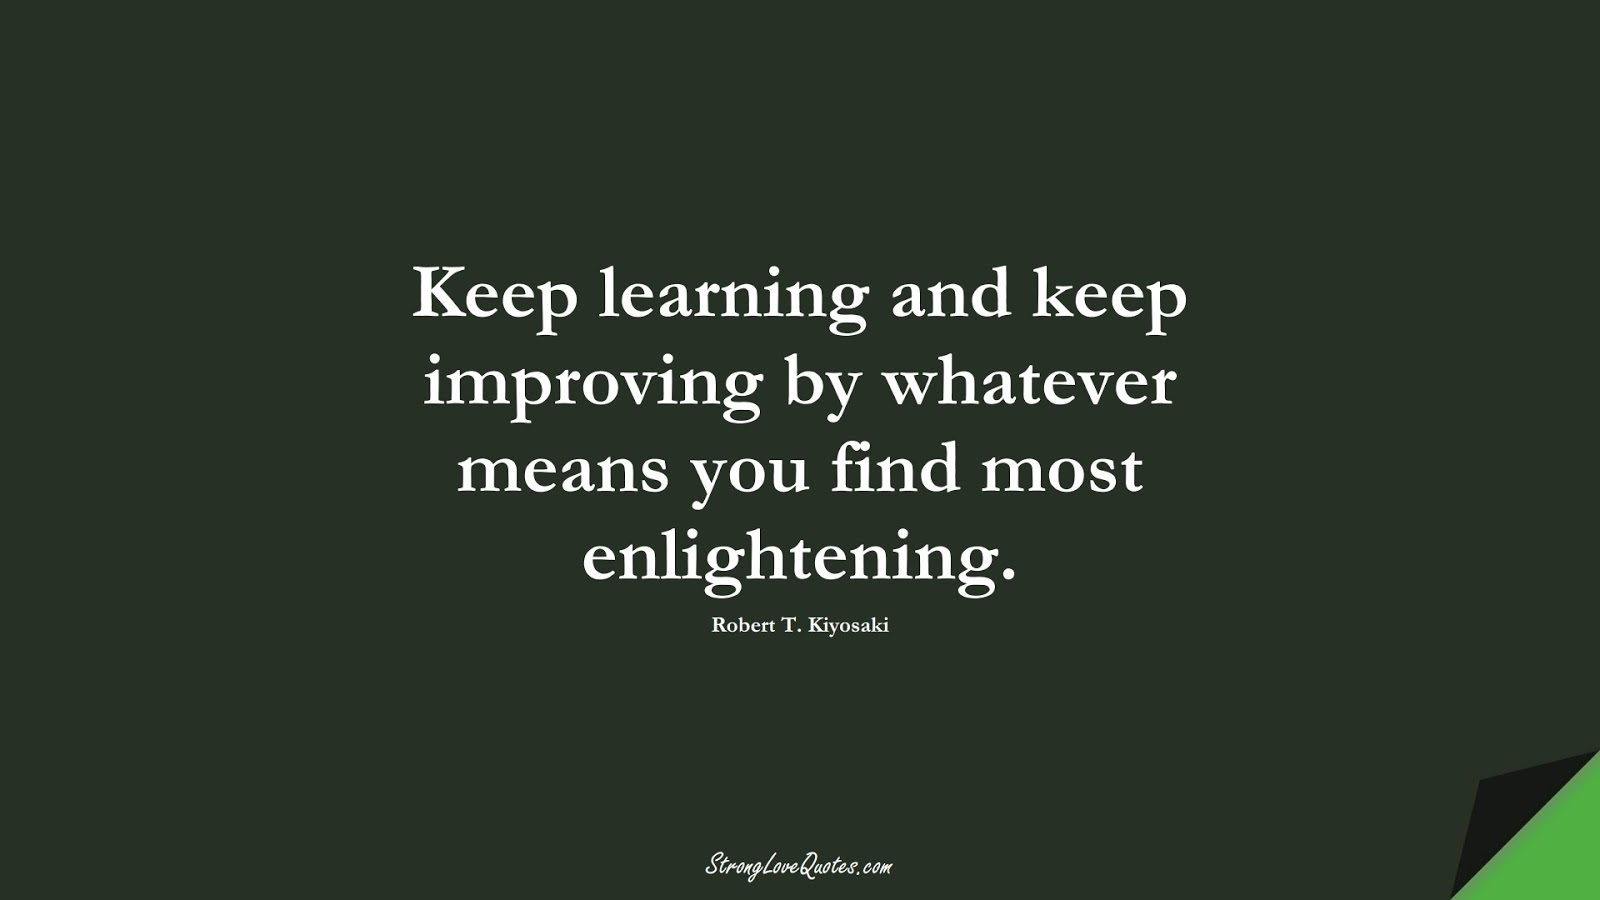 Keep learning and keep improving by whatever means you find most enlightening. (Robert T. Kiyosaki);  #LearningQuotes